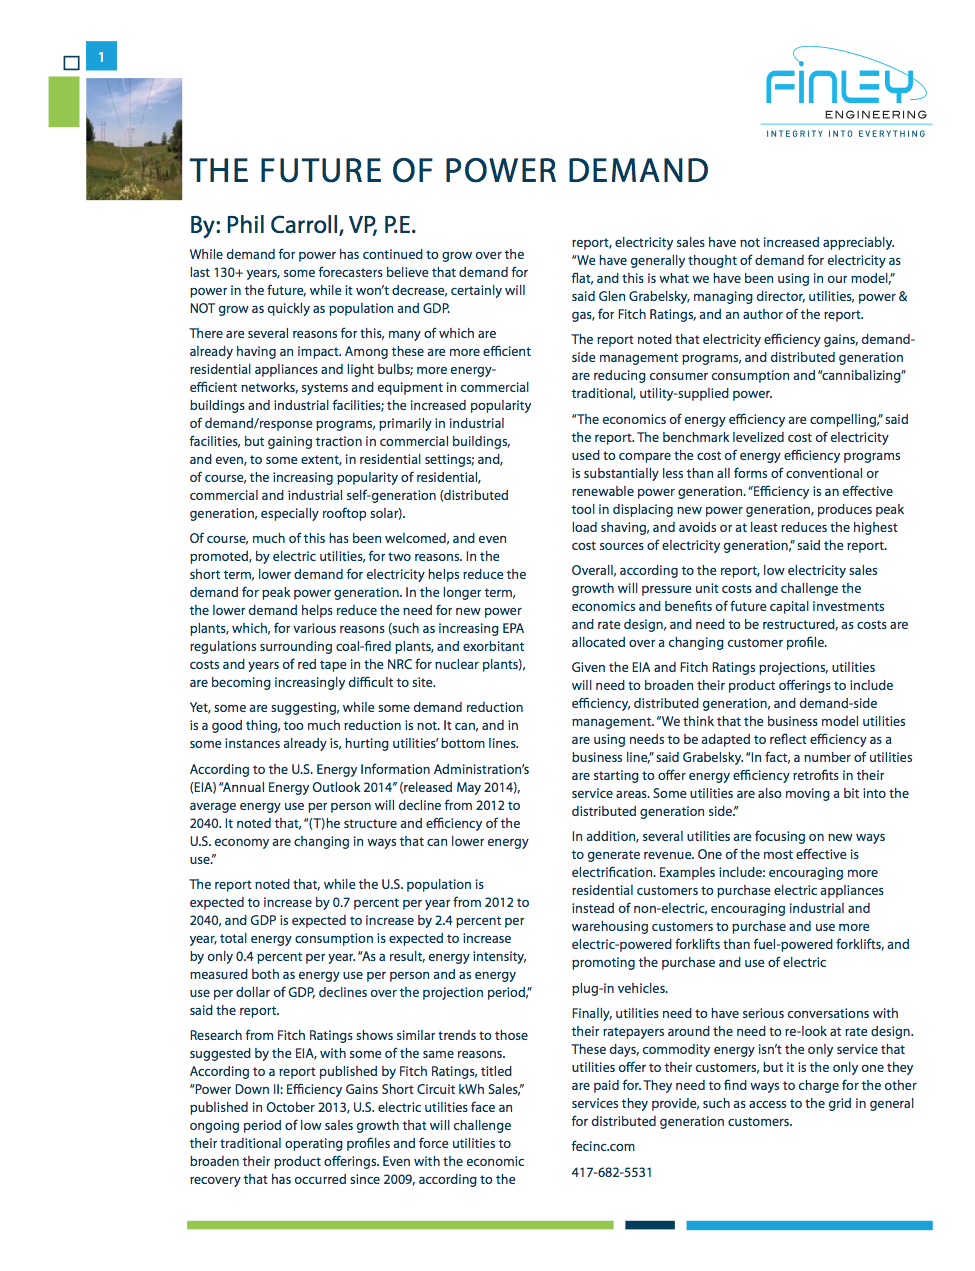 future-of-power-demand